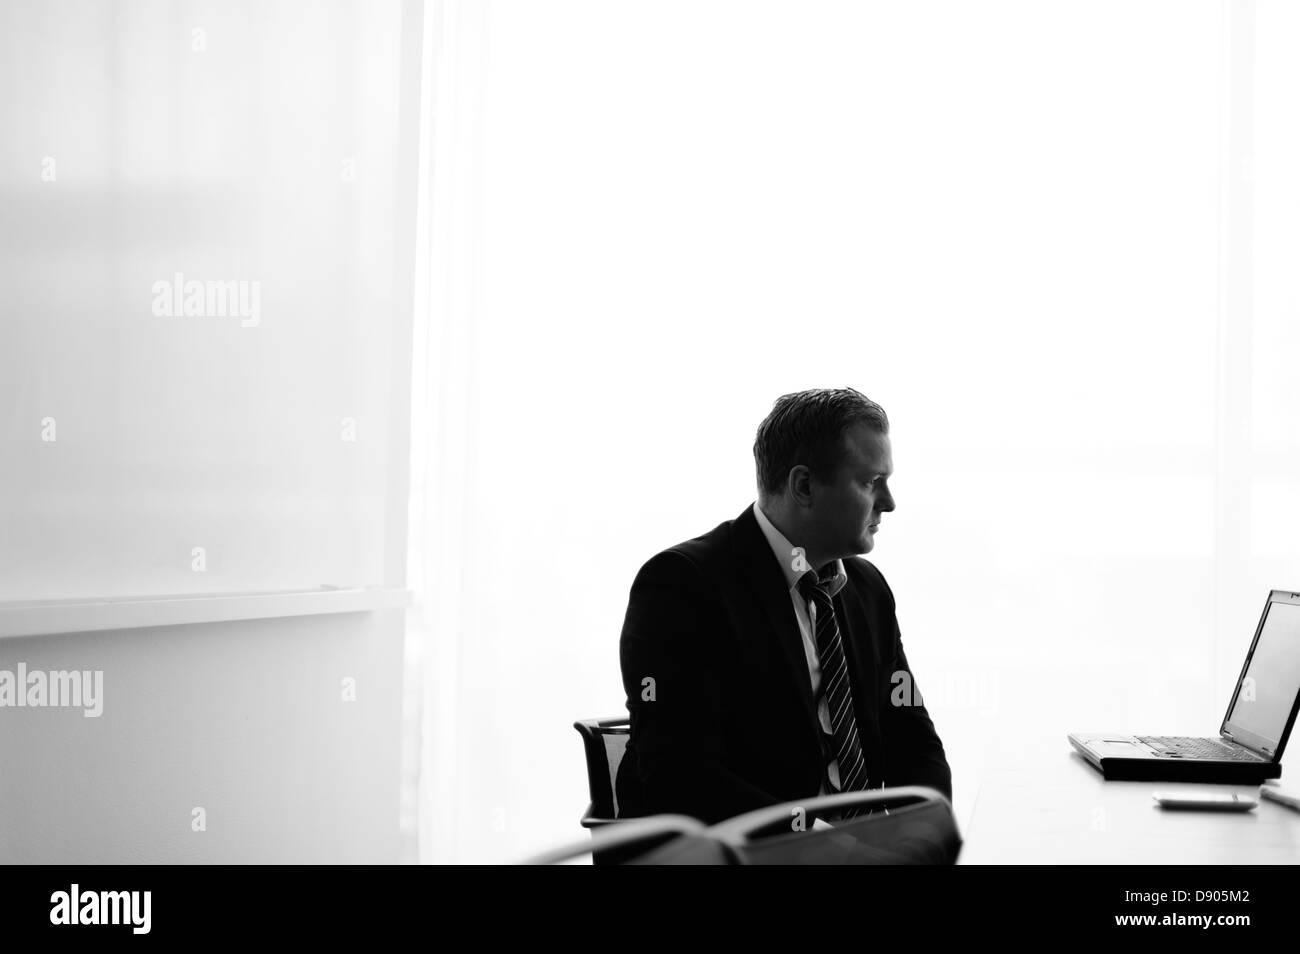 Businessman looking at laptop Photo Stock